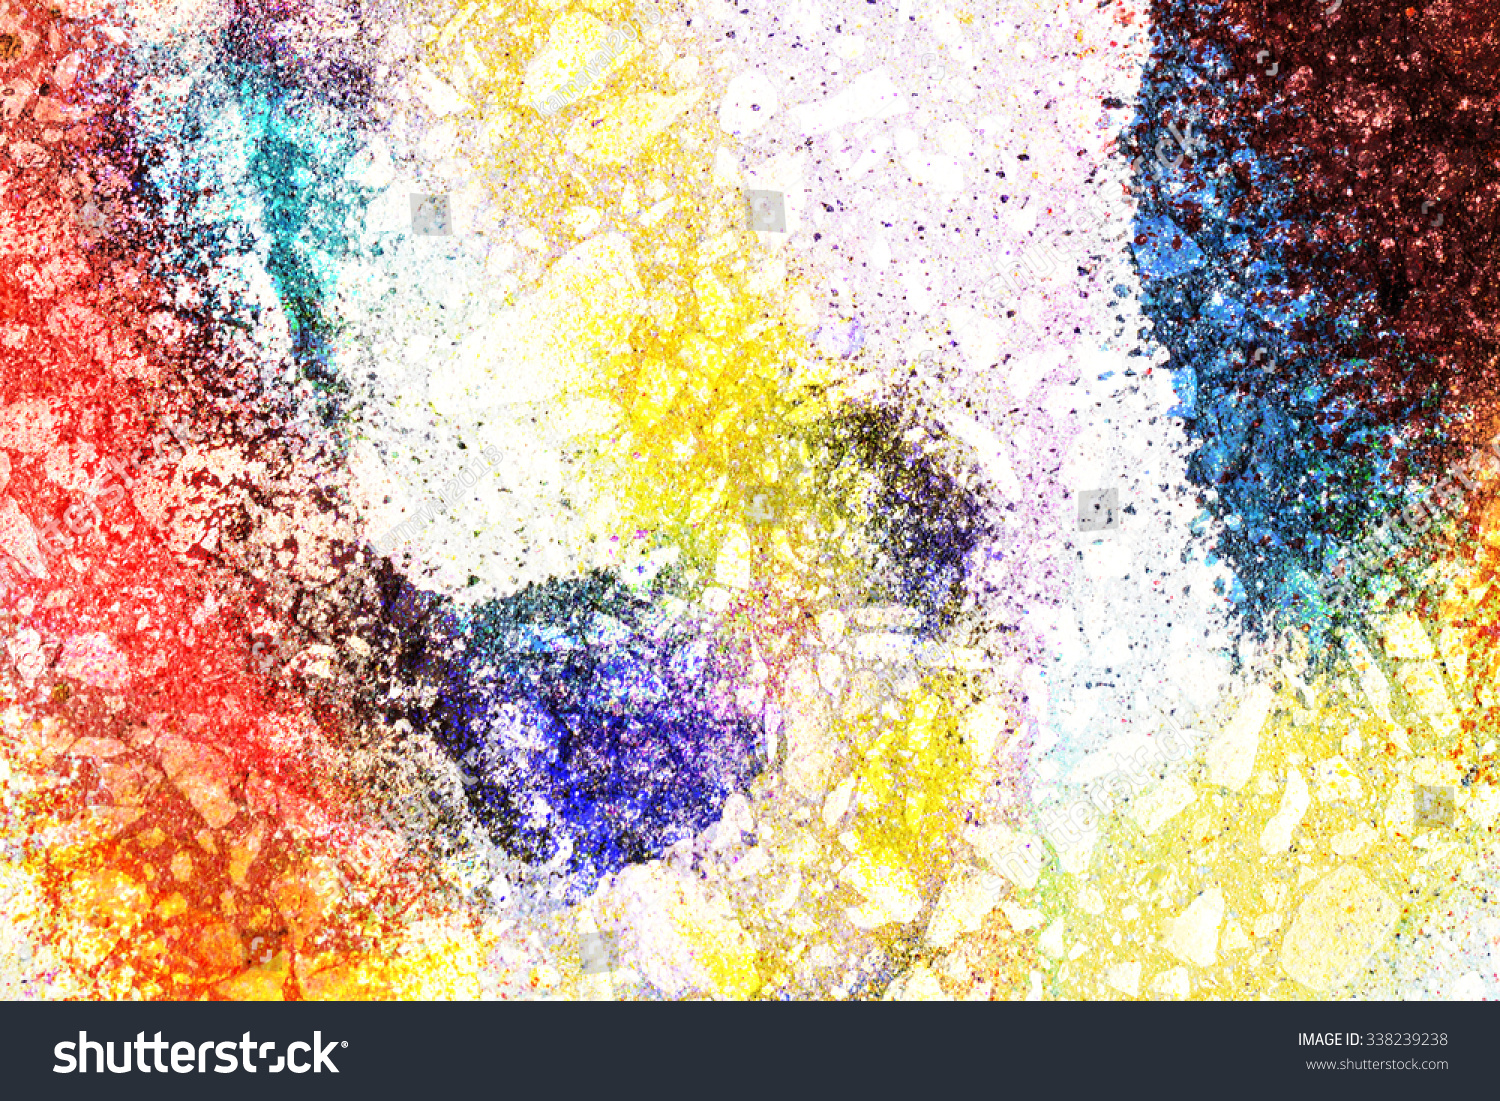 The walls are painted in various colorful bright colors | EZ Canvas